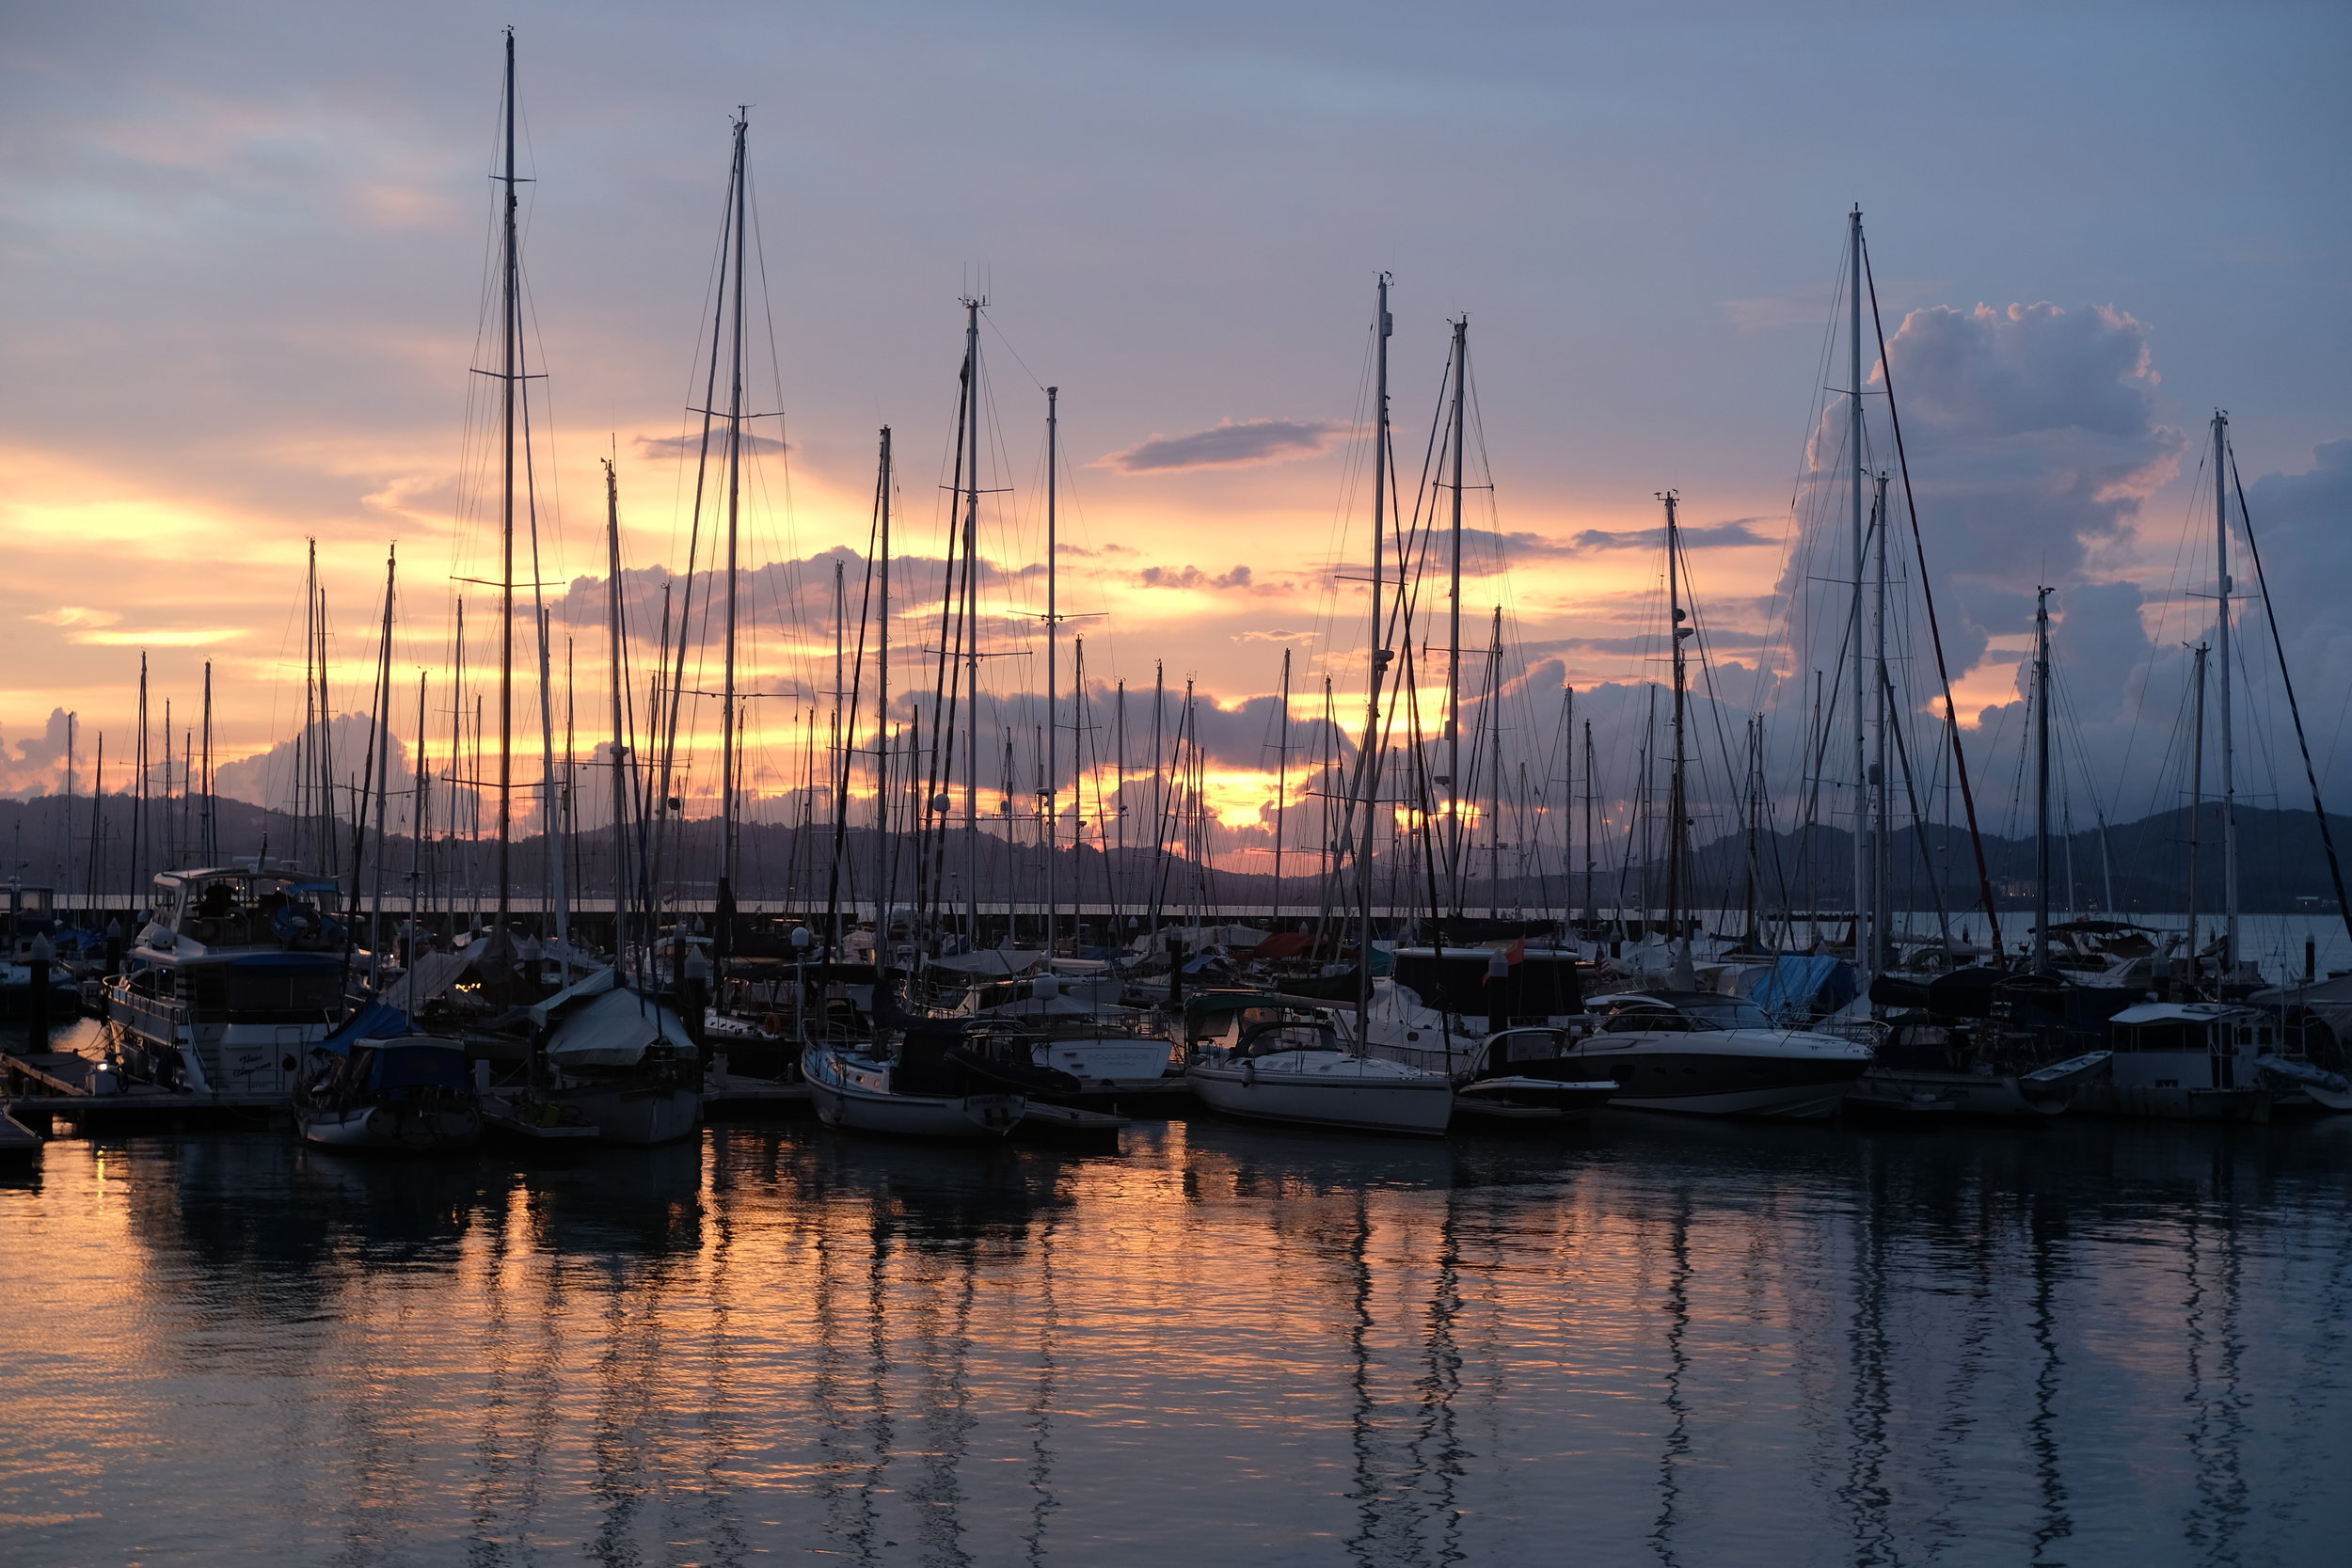 Sunset at the Royal Yacht Club Marina, Langkawi